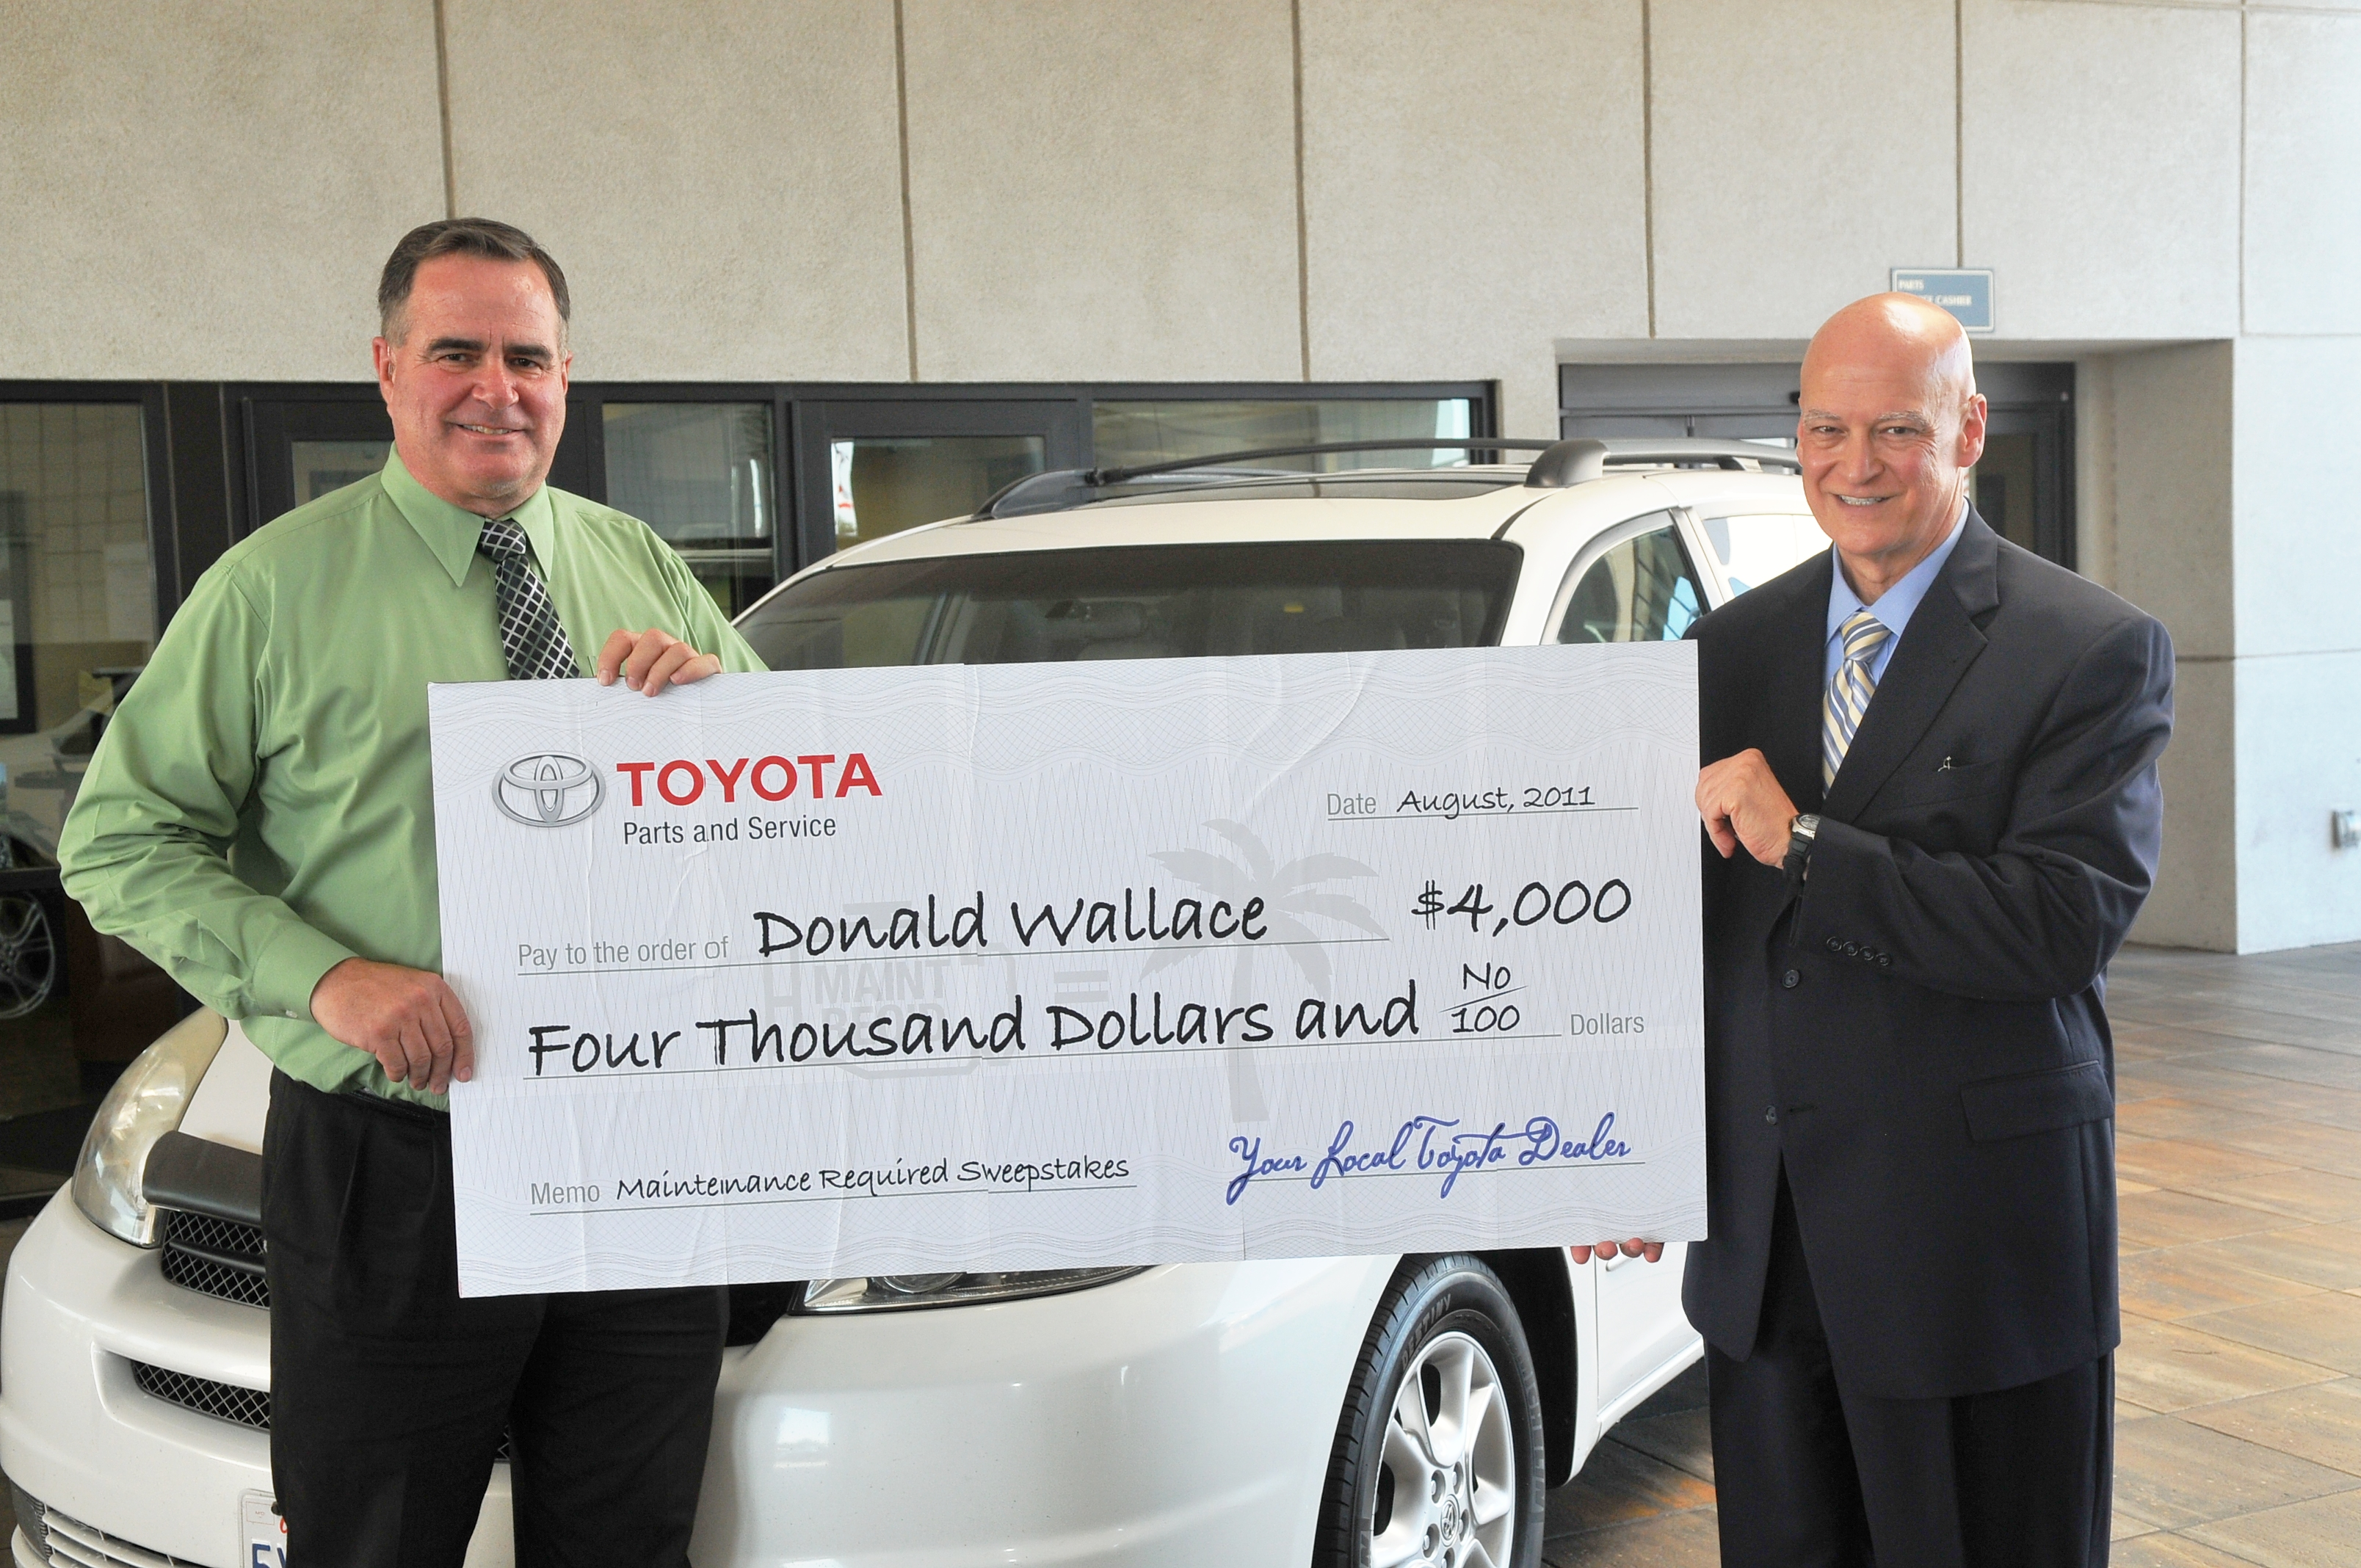 Toyota Dealership Awards Winner Of U201cMaintenance Requiredu201d Contest